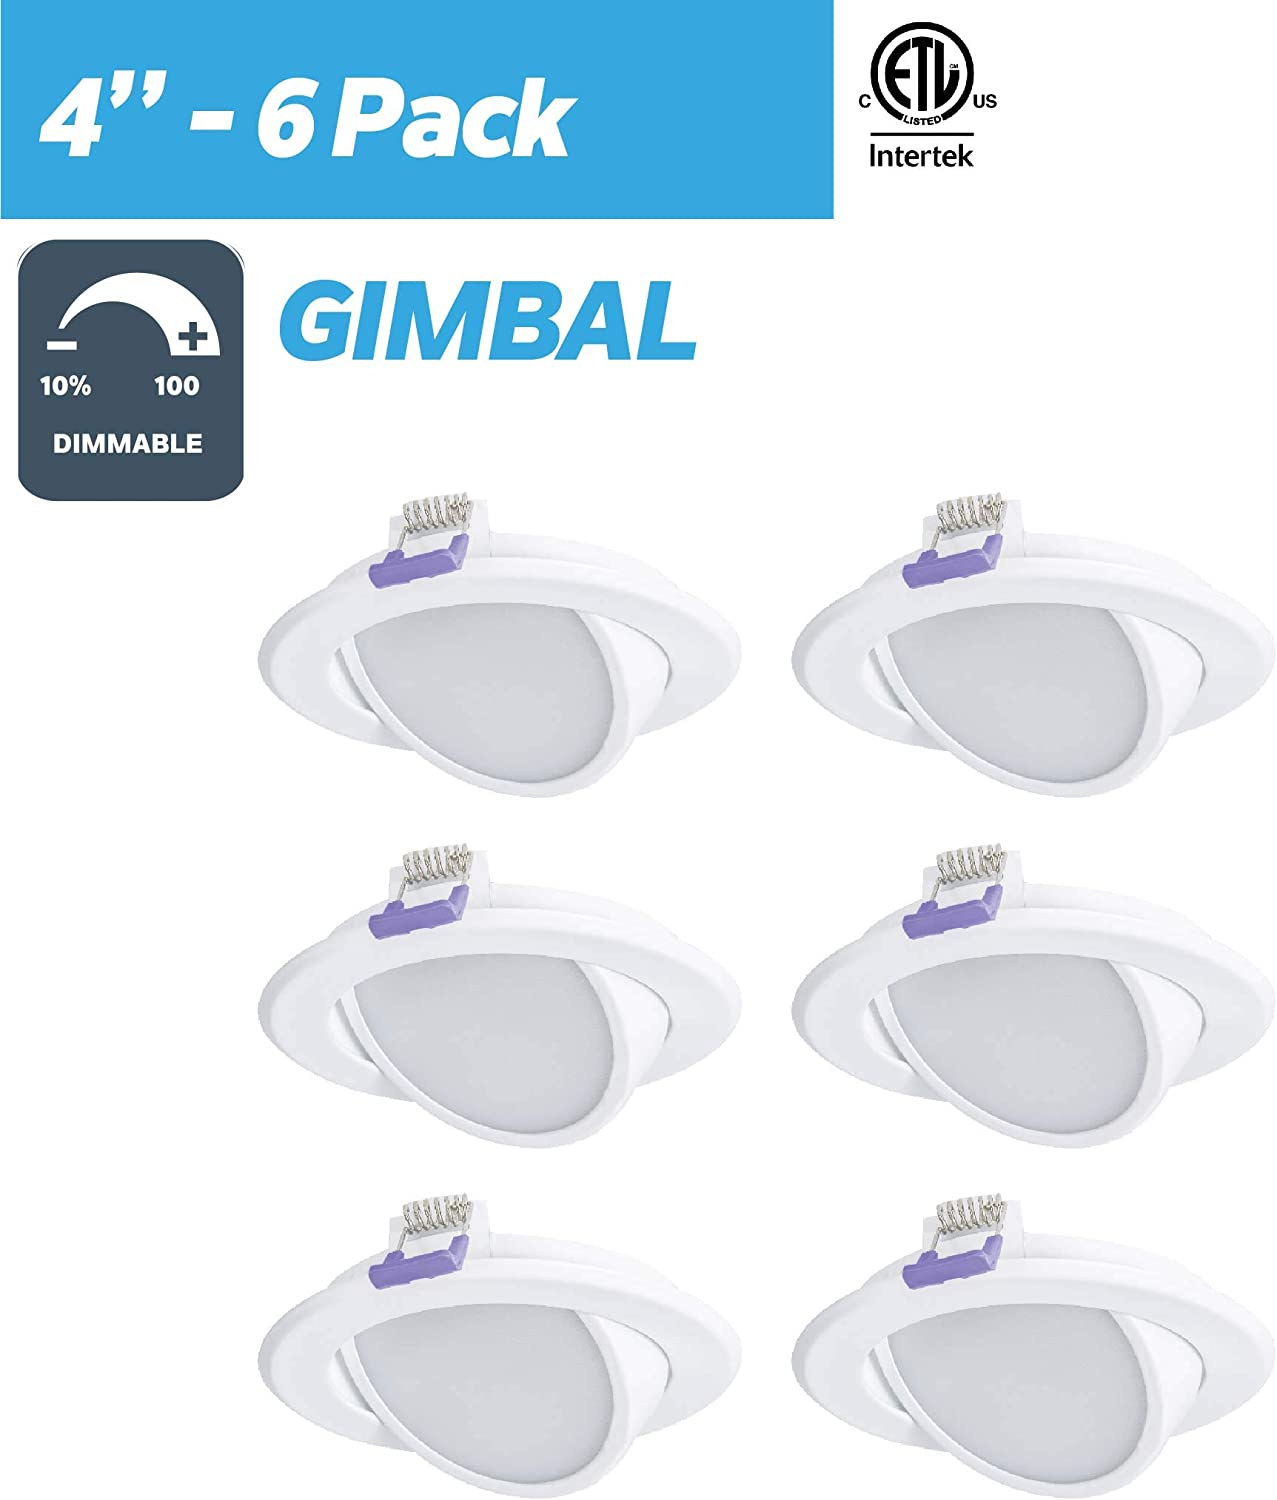 Finish LED Slim Swivel Panel Light Nadair SL4-550SW-6WH3K 6 Pack 4 Ic Rated Dimmable Gimbal Ultra Recessed Junction Box 3000K Warm White 6-Pack 9W 550 Lumens Energy Star